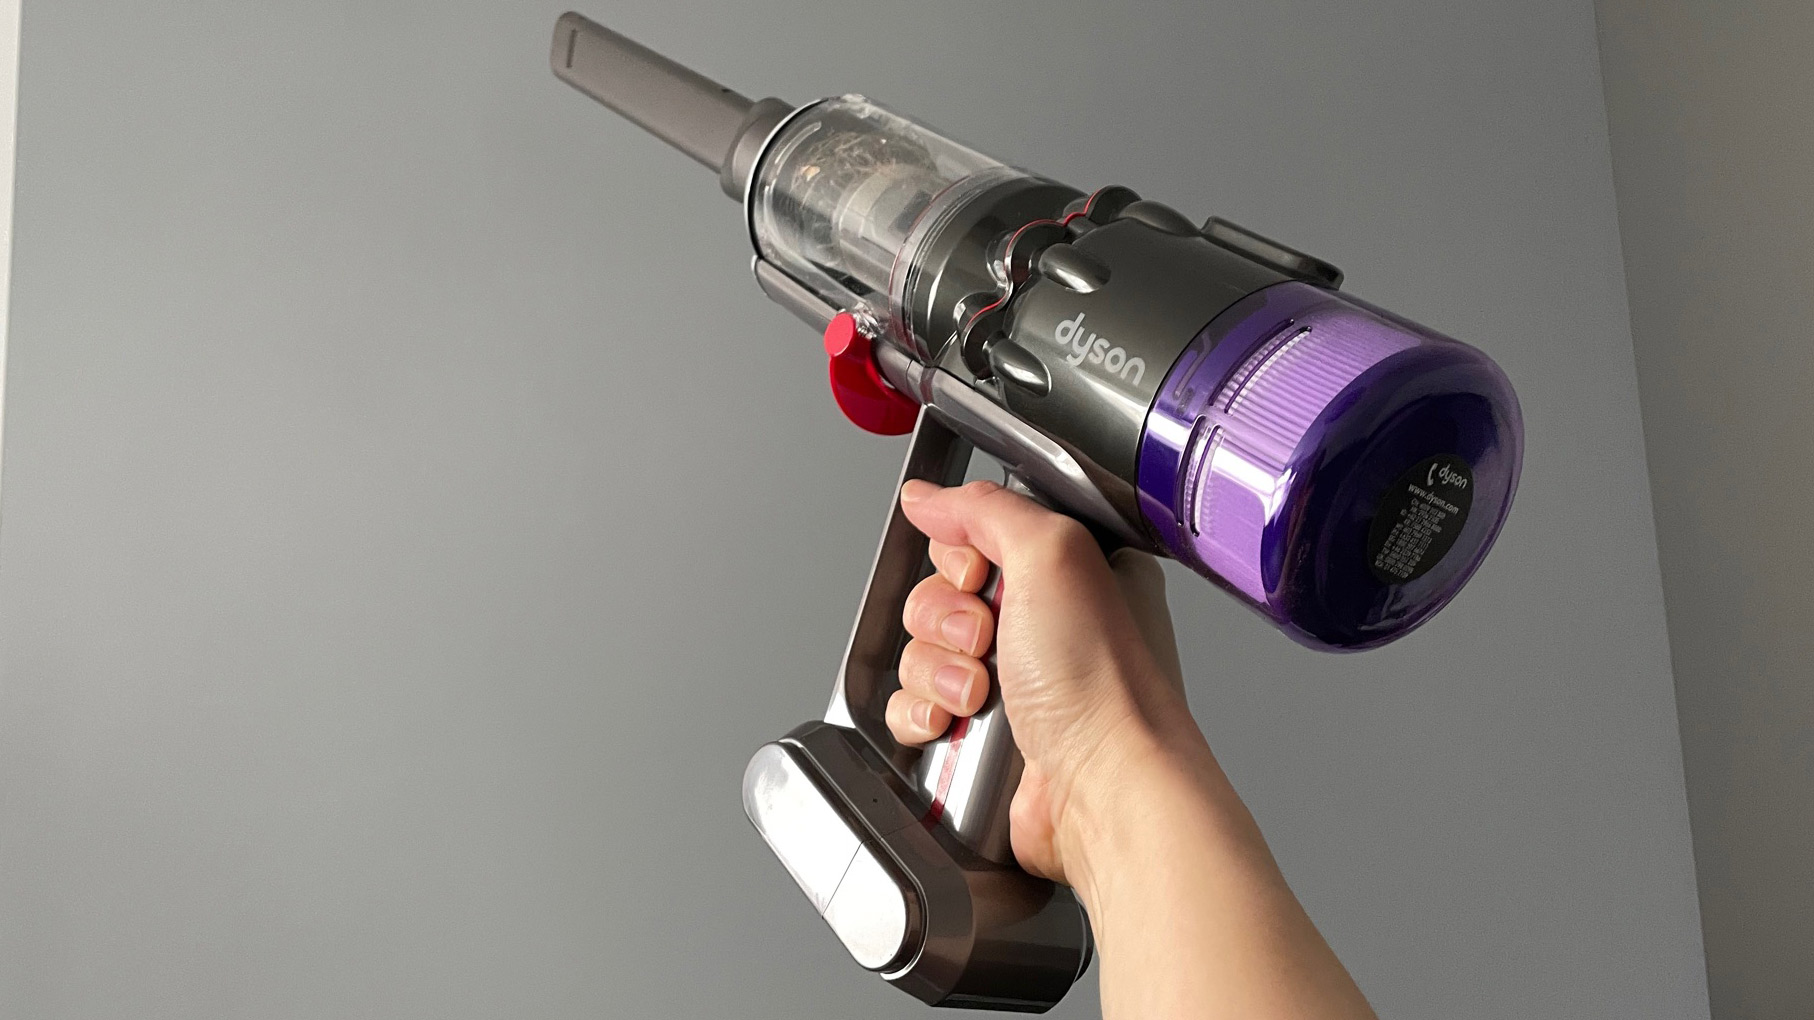 Dyson Micro 1.5kg being used as a handheld vacuum cleaner to clean up high